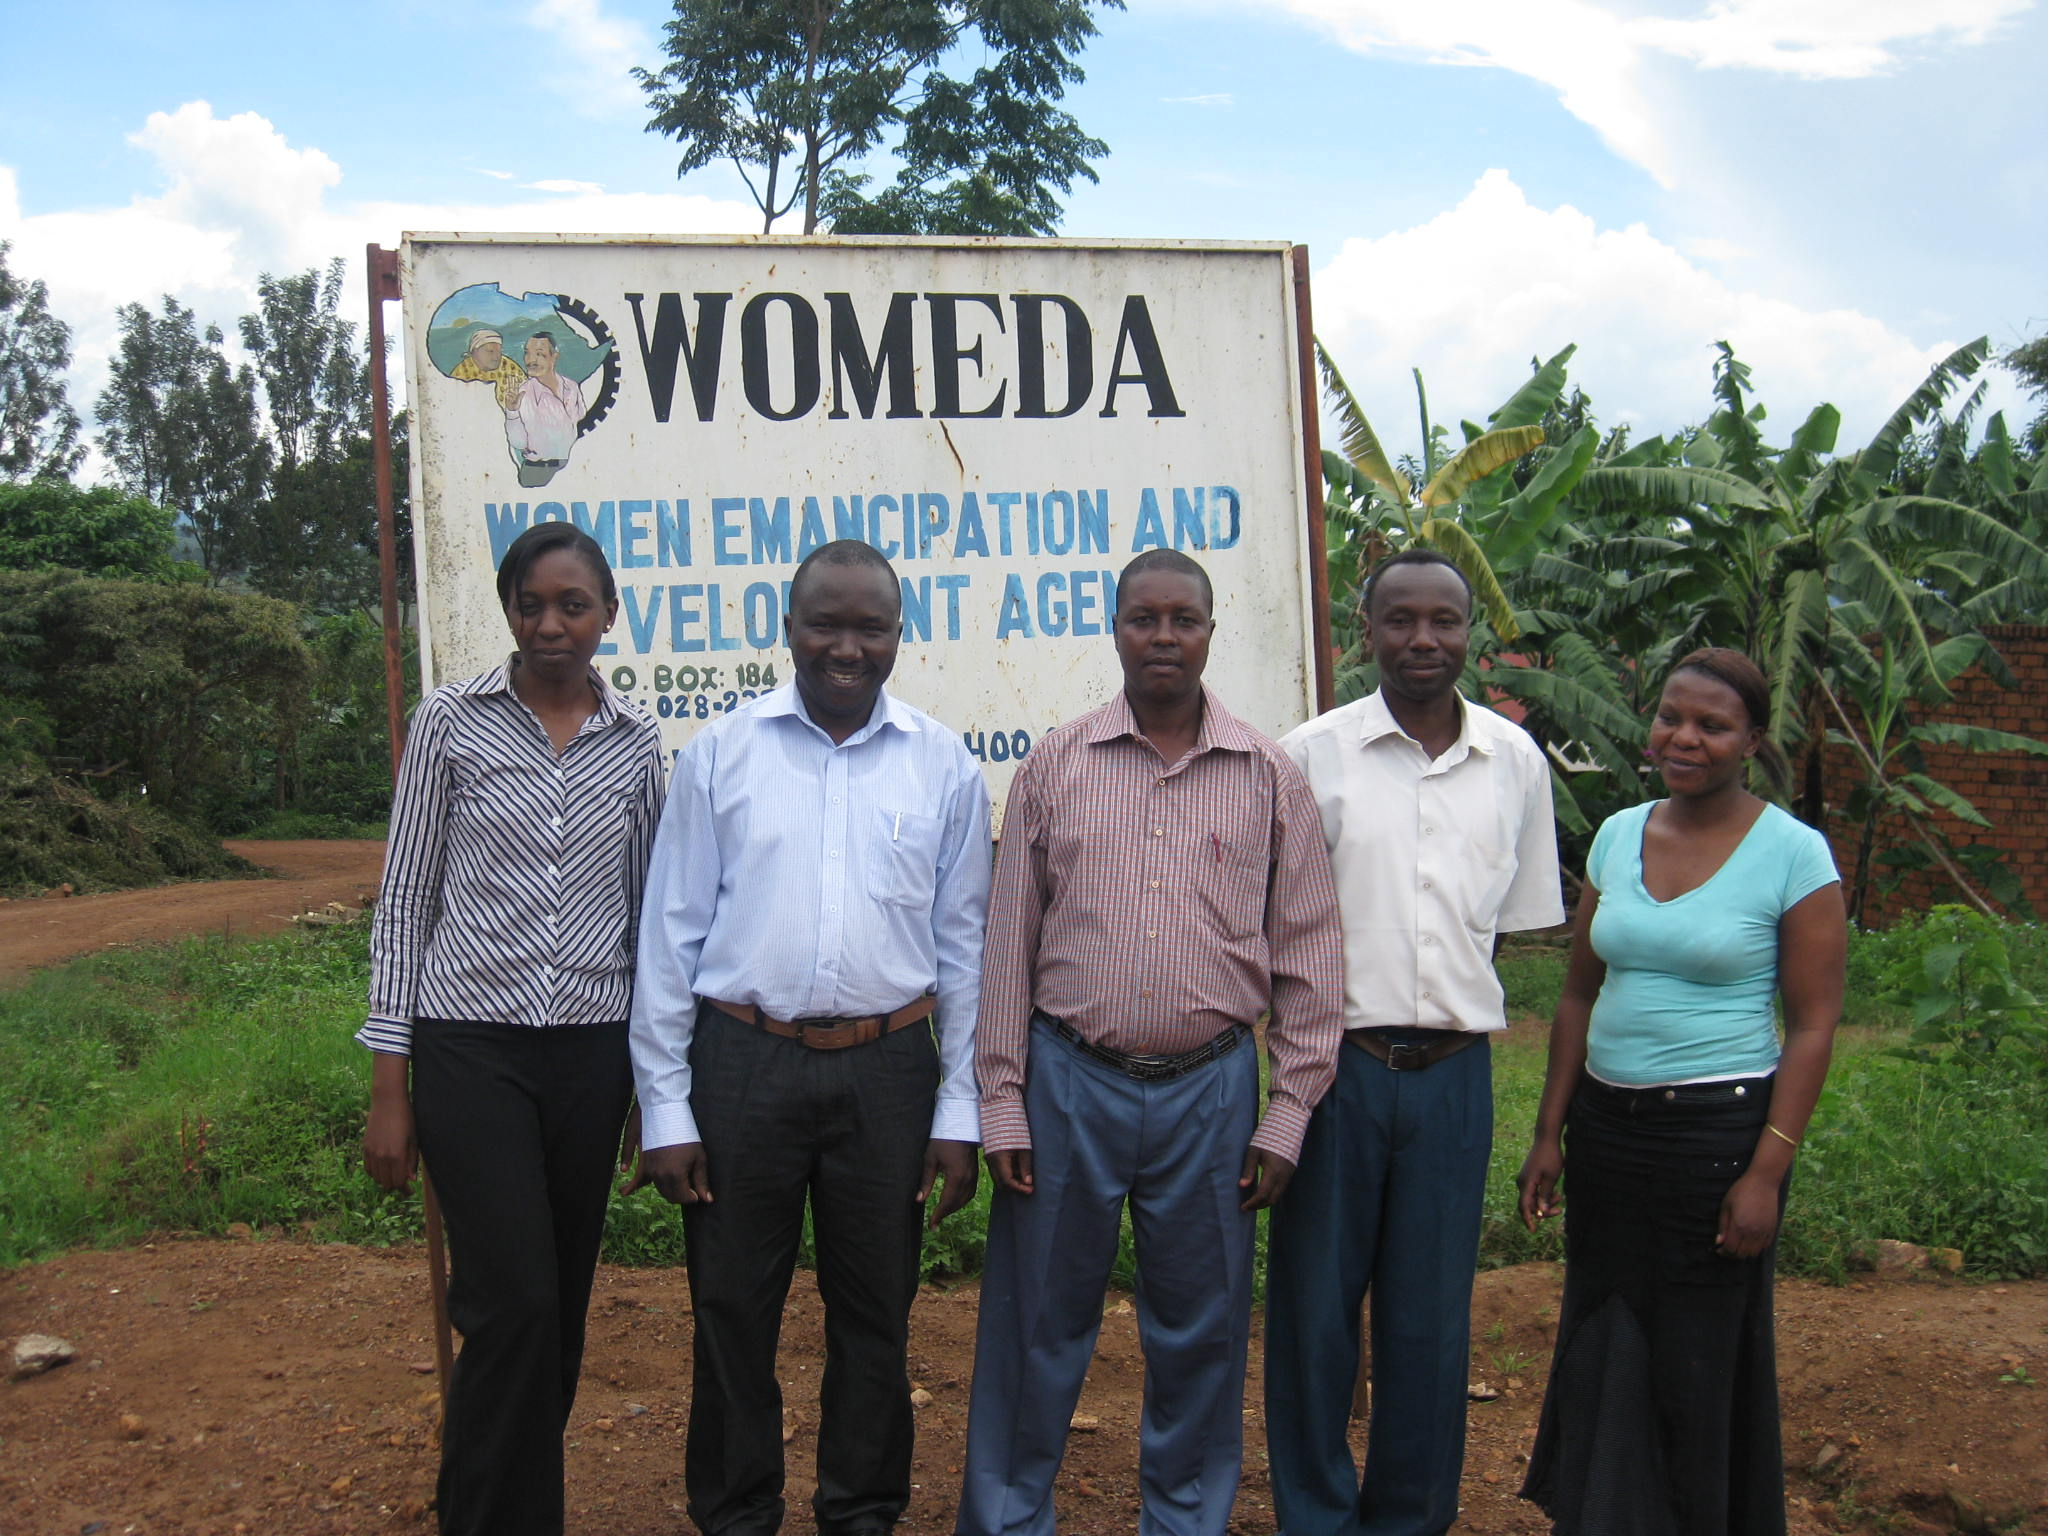 WOMEDA staff at a site visit in 2011